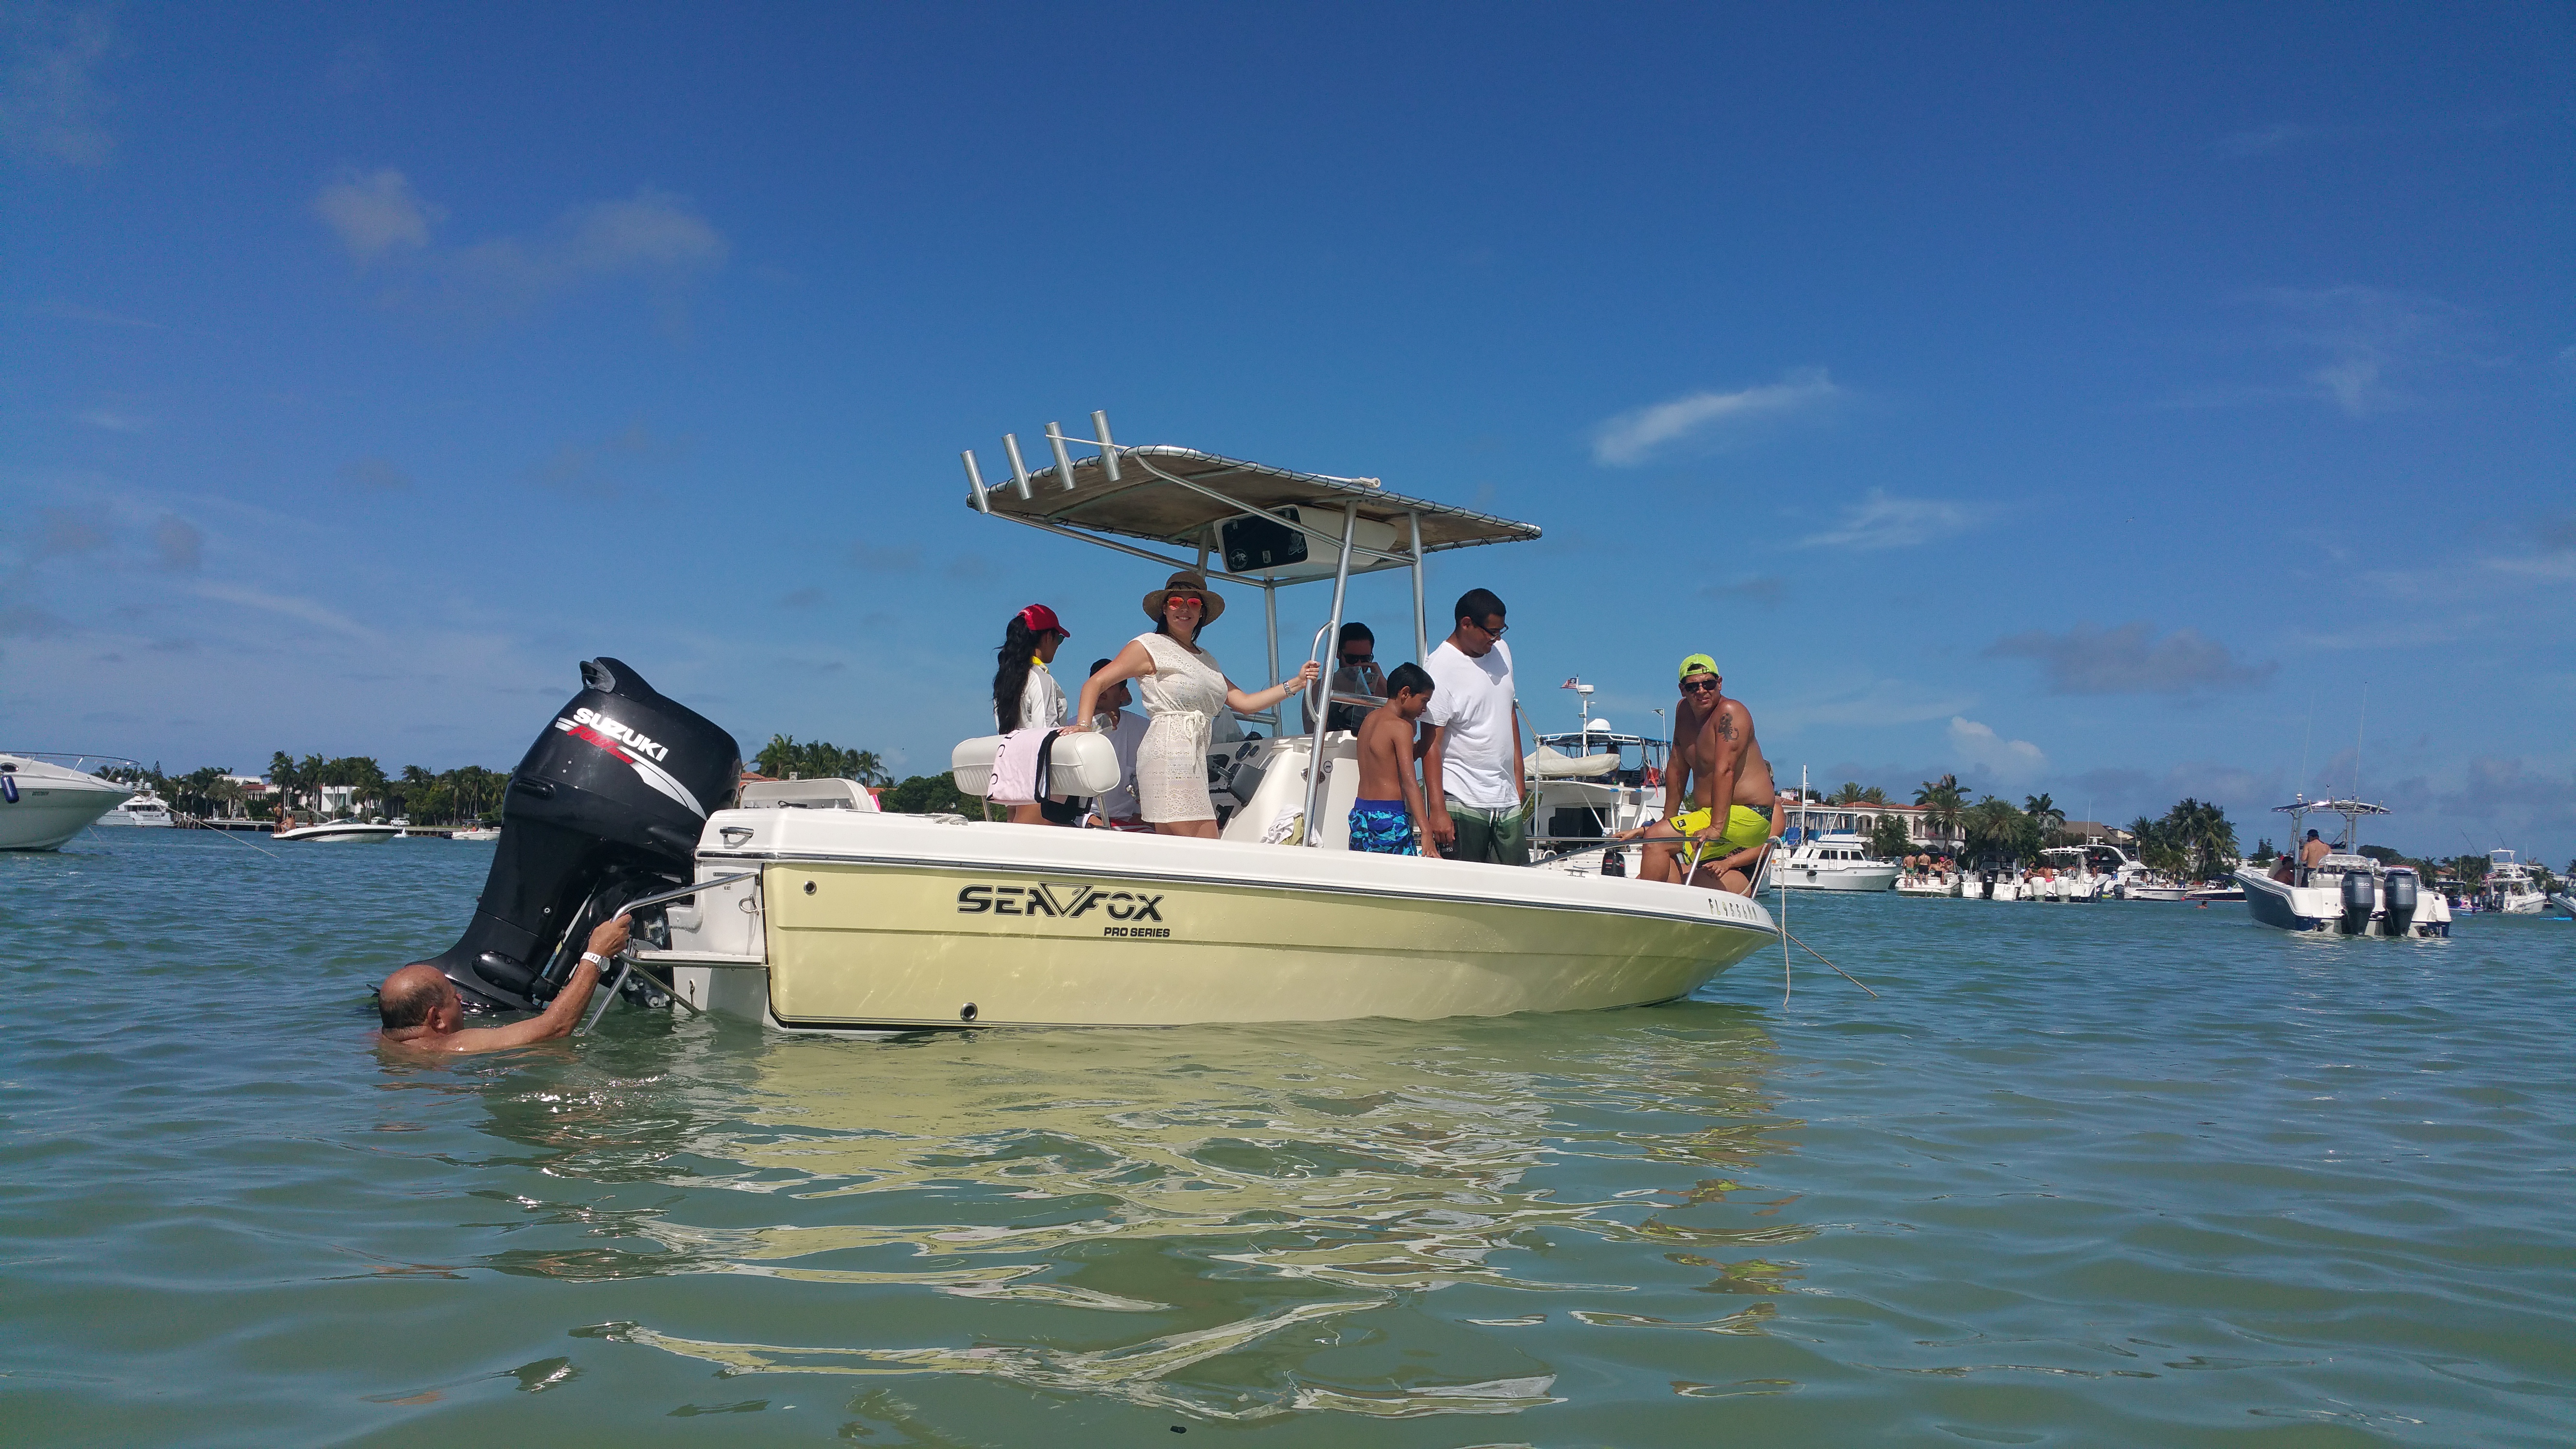 boat rentals Florida Miami Florida  Sea Fox 197 CC Pro 2008 20 Feet